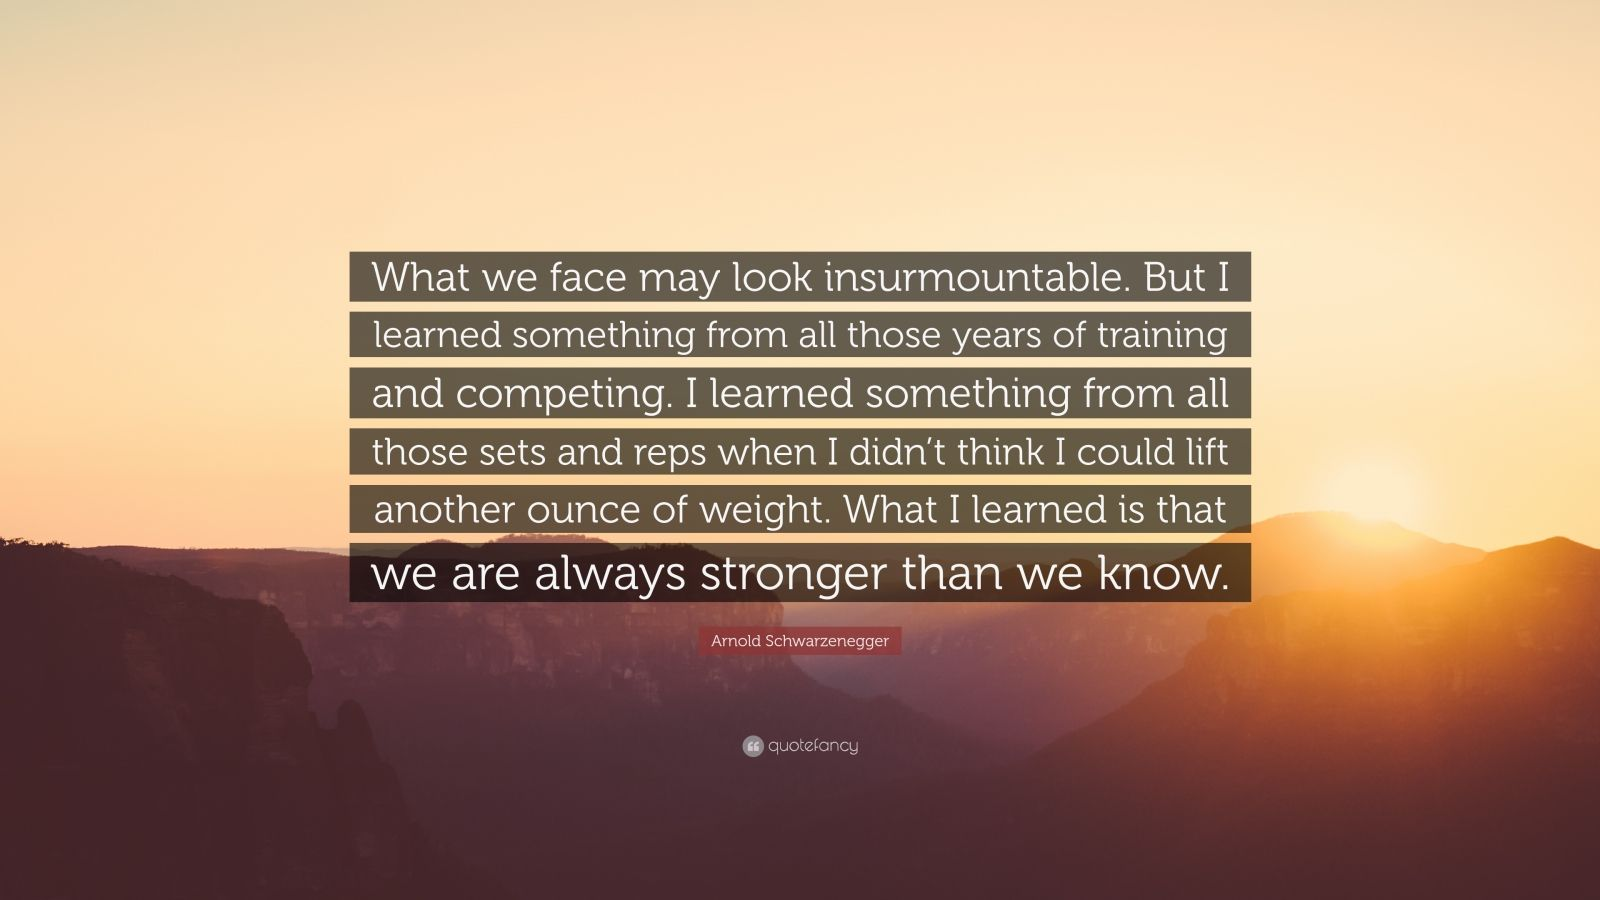 "Arnold Schwarzenegger Quote: ""What we face may look insurmountable. But I learned something from all those years of training and competing. I learned something from all those sets and reps when I didn't think I could lift another ounce of weight. What I learned is that we are always stronger than we know."""